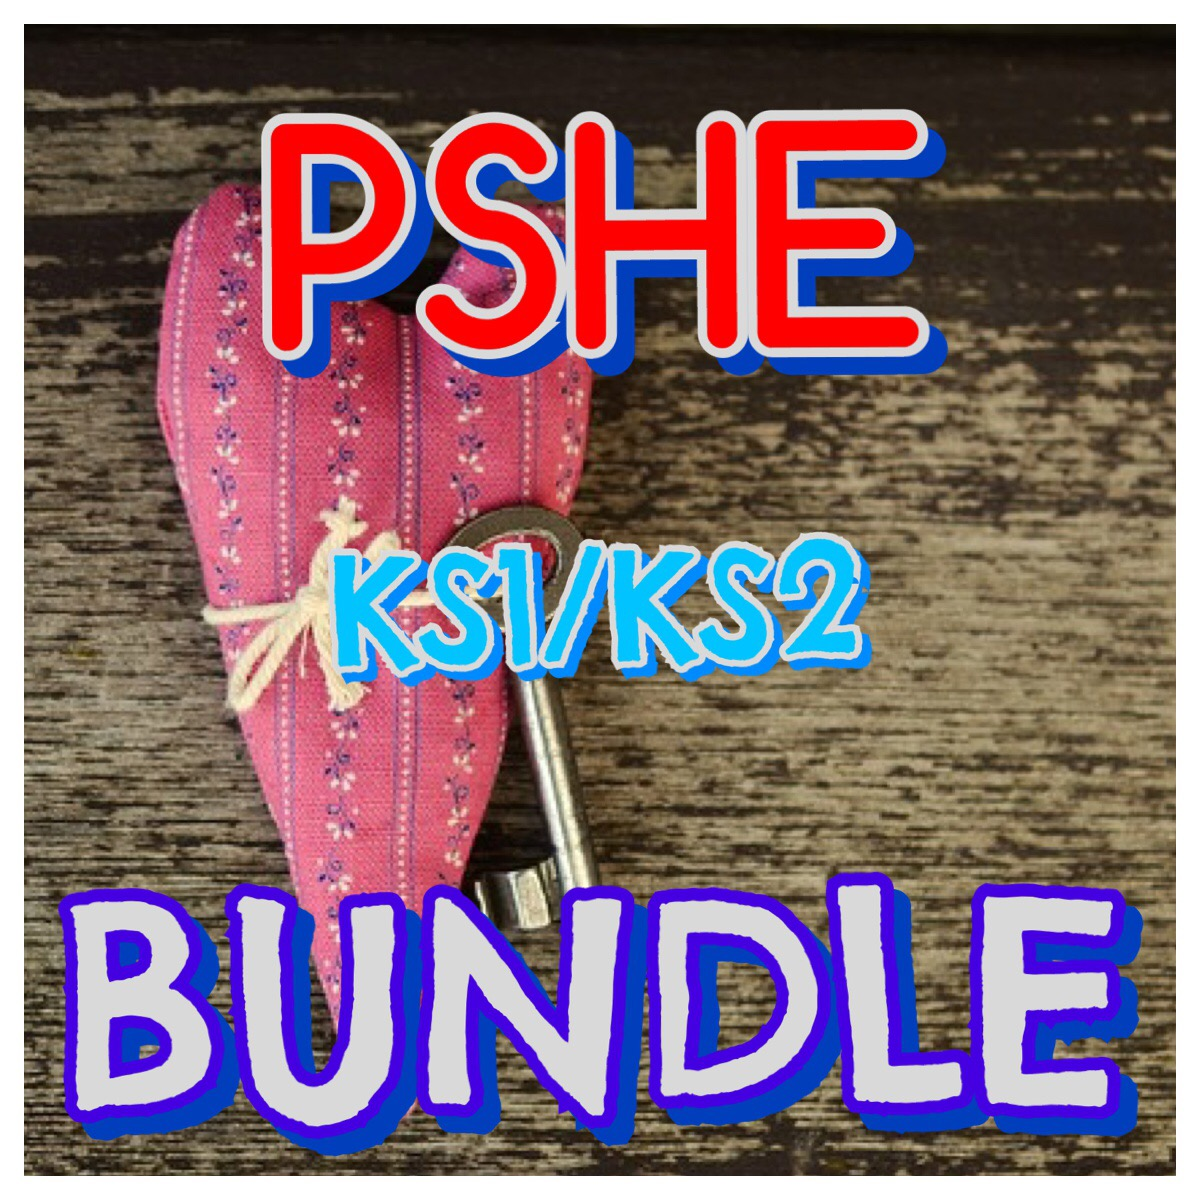 PSHE Bundle for KS1/KS2